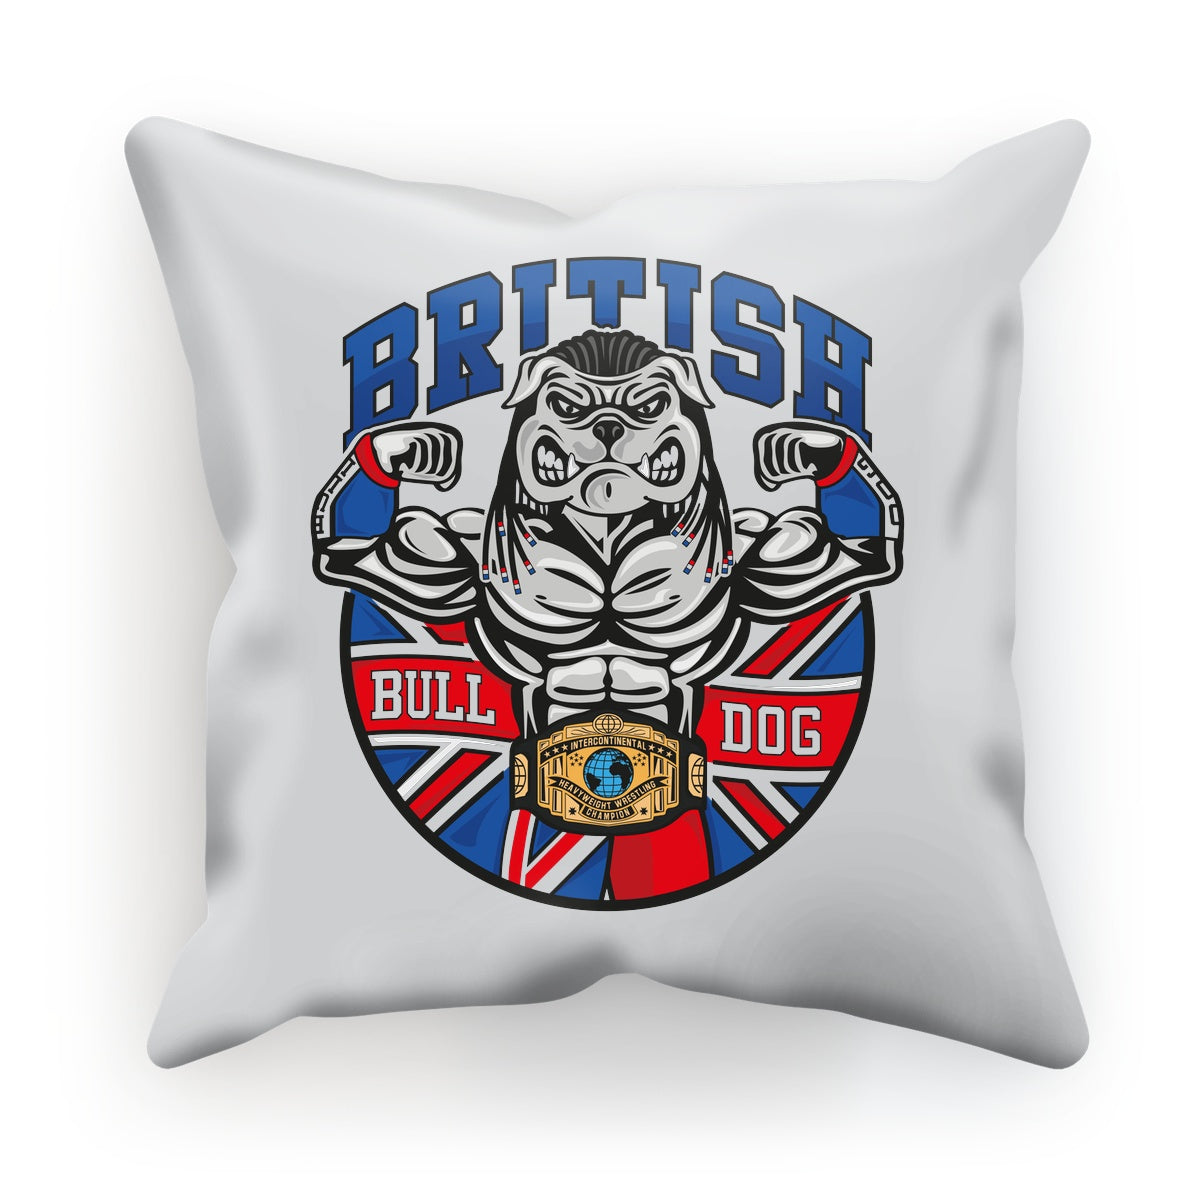 British Bulldog Matilda Cushion